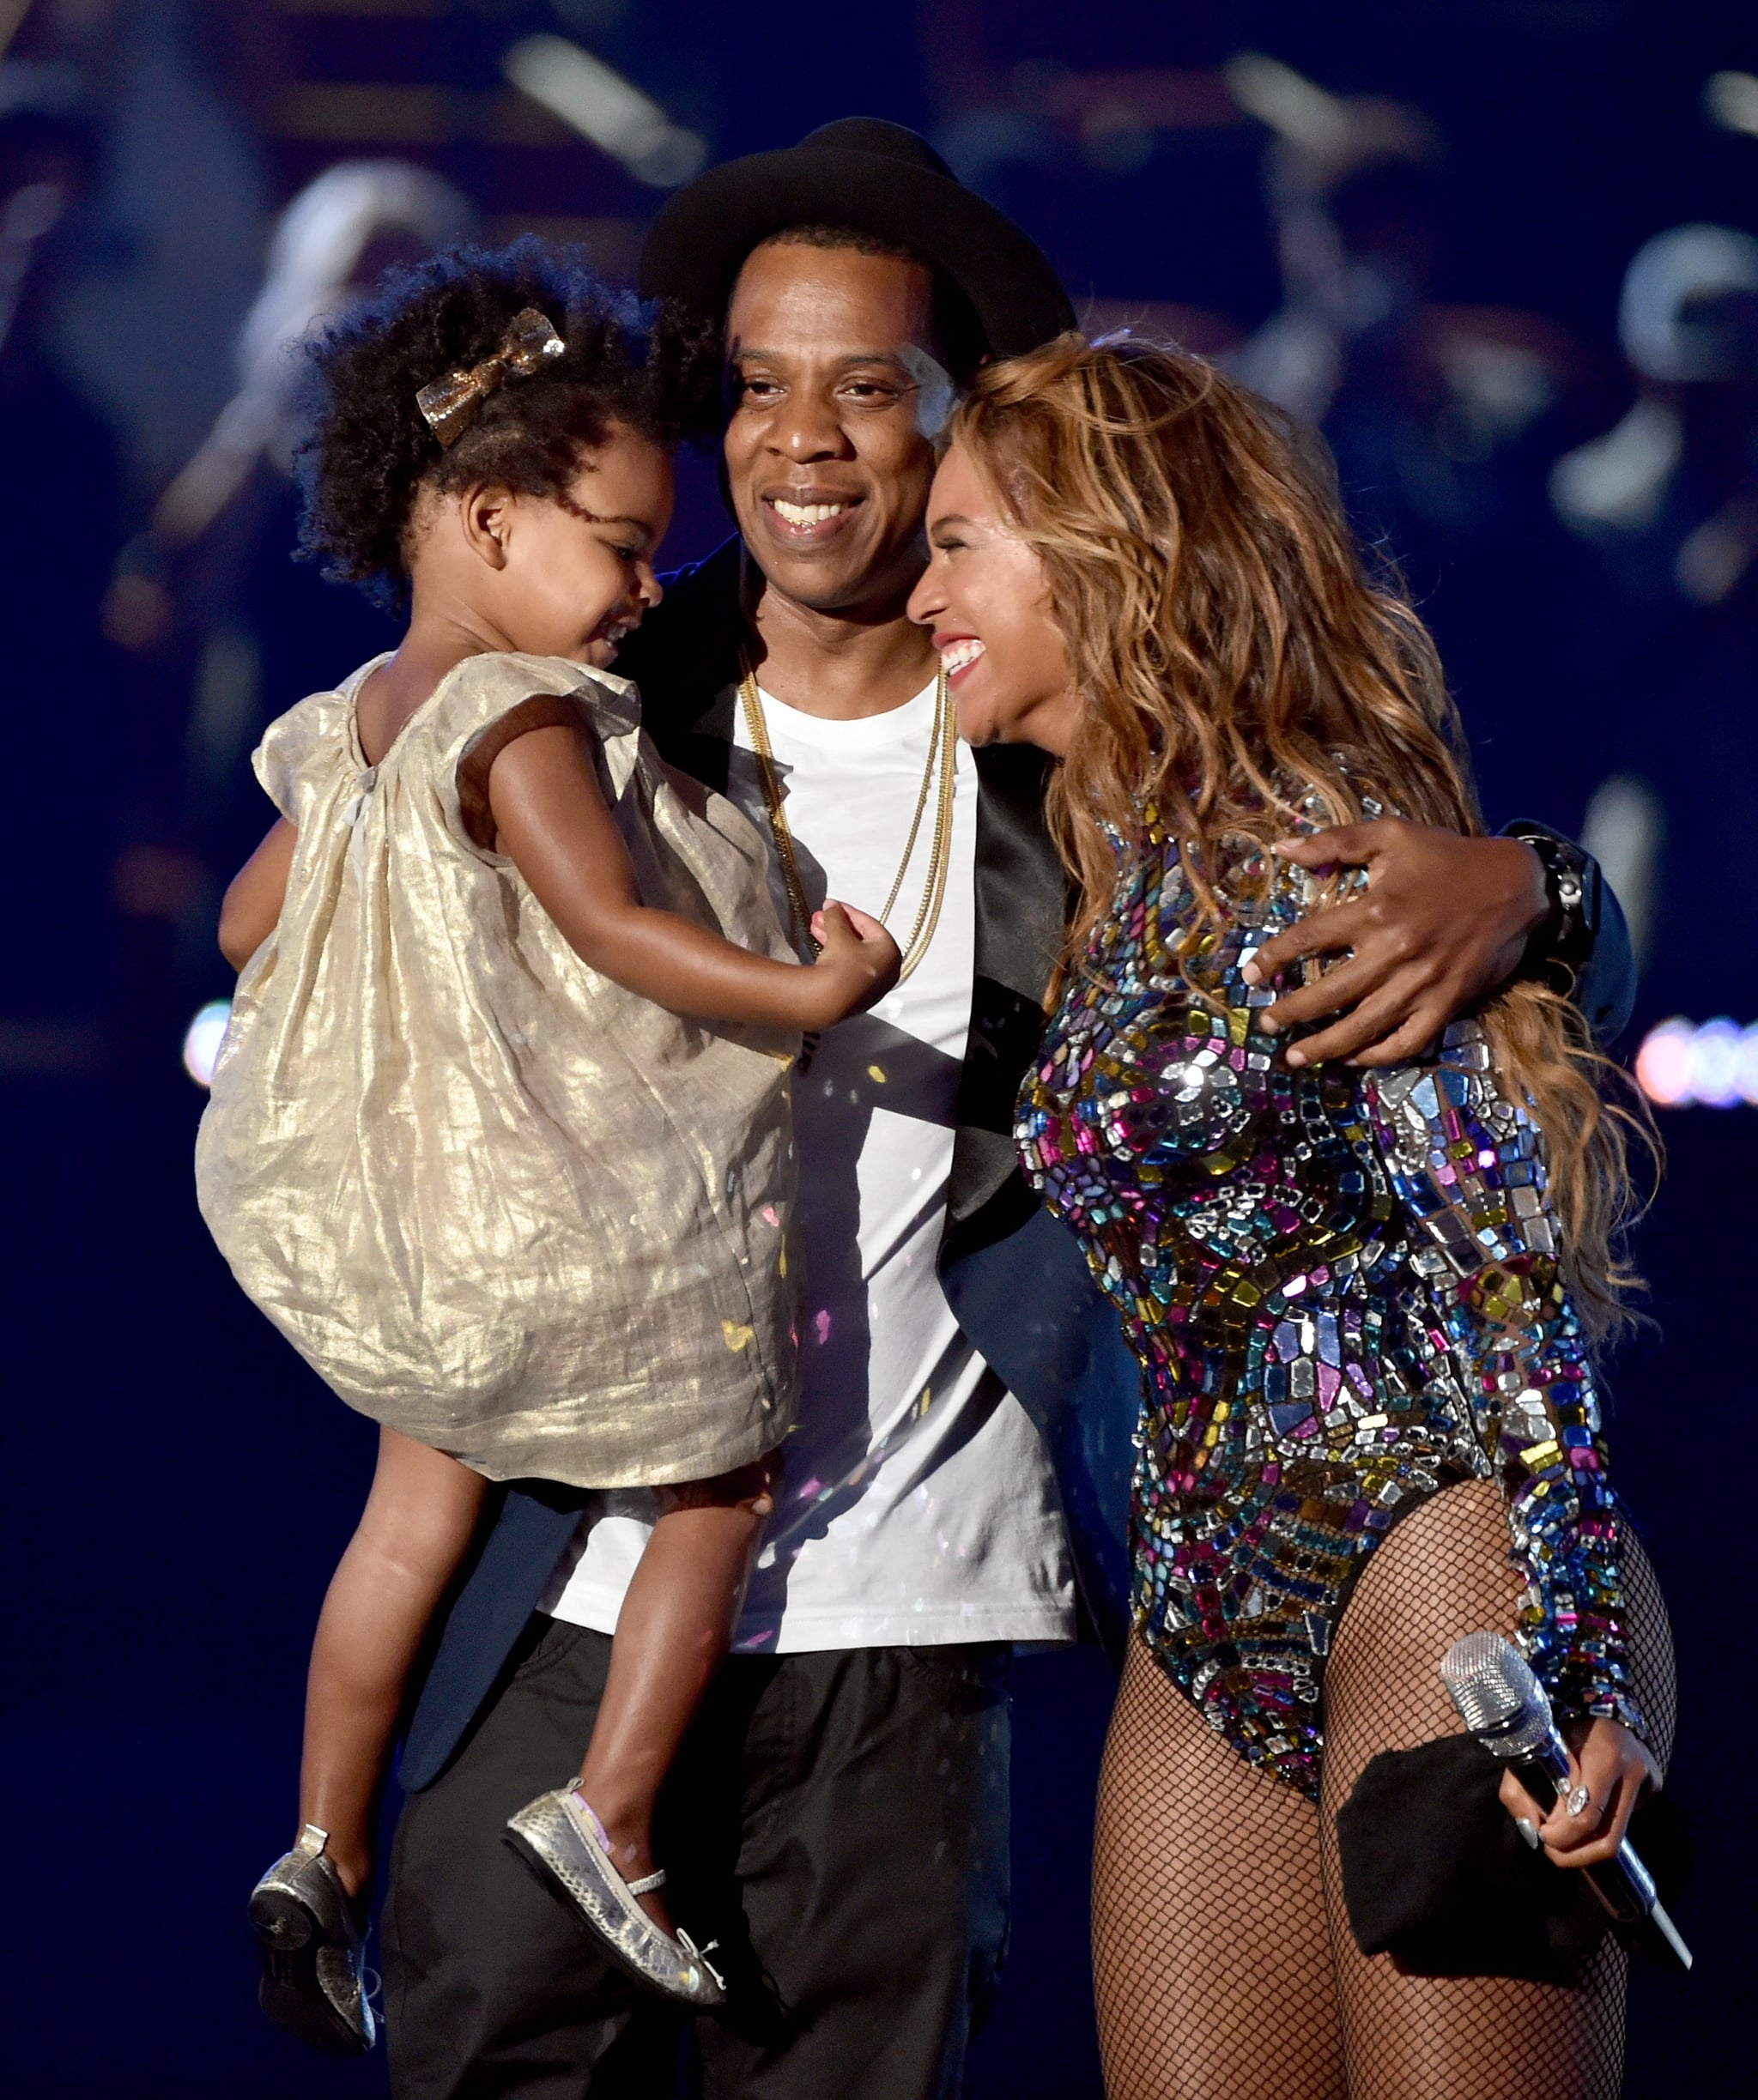 INGLEWOOD, CA - AUGUST 24:  Rapper Jay Z and singer Beyonce with daughter Blue Ivy Carter onstage during the 2014 MTV Video Music Awards at The Forum on August 24, 2014 in Inglewood, California.  (Photo by Kevin Winter/MTV1415/Getty Images for MTV)